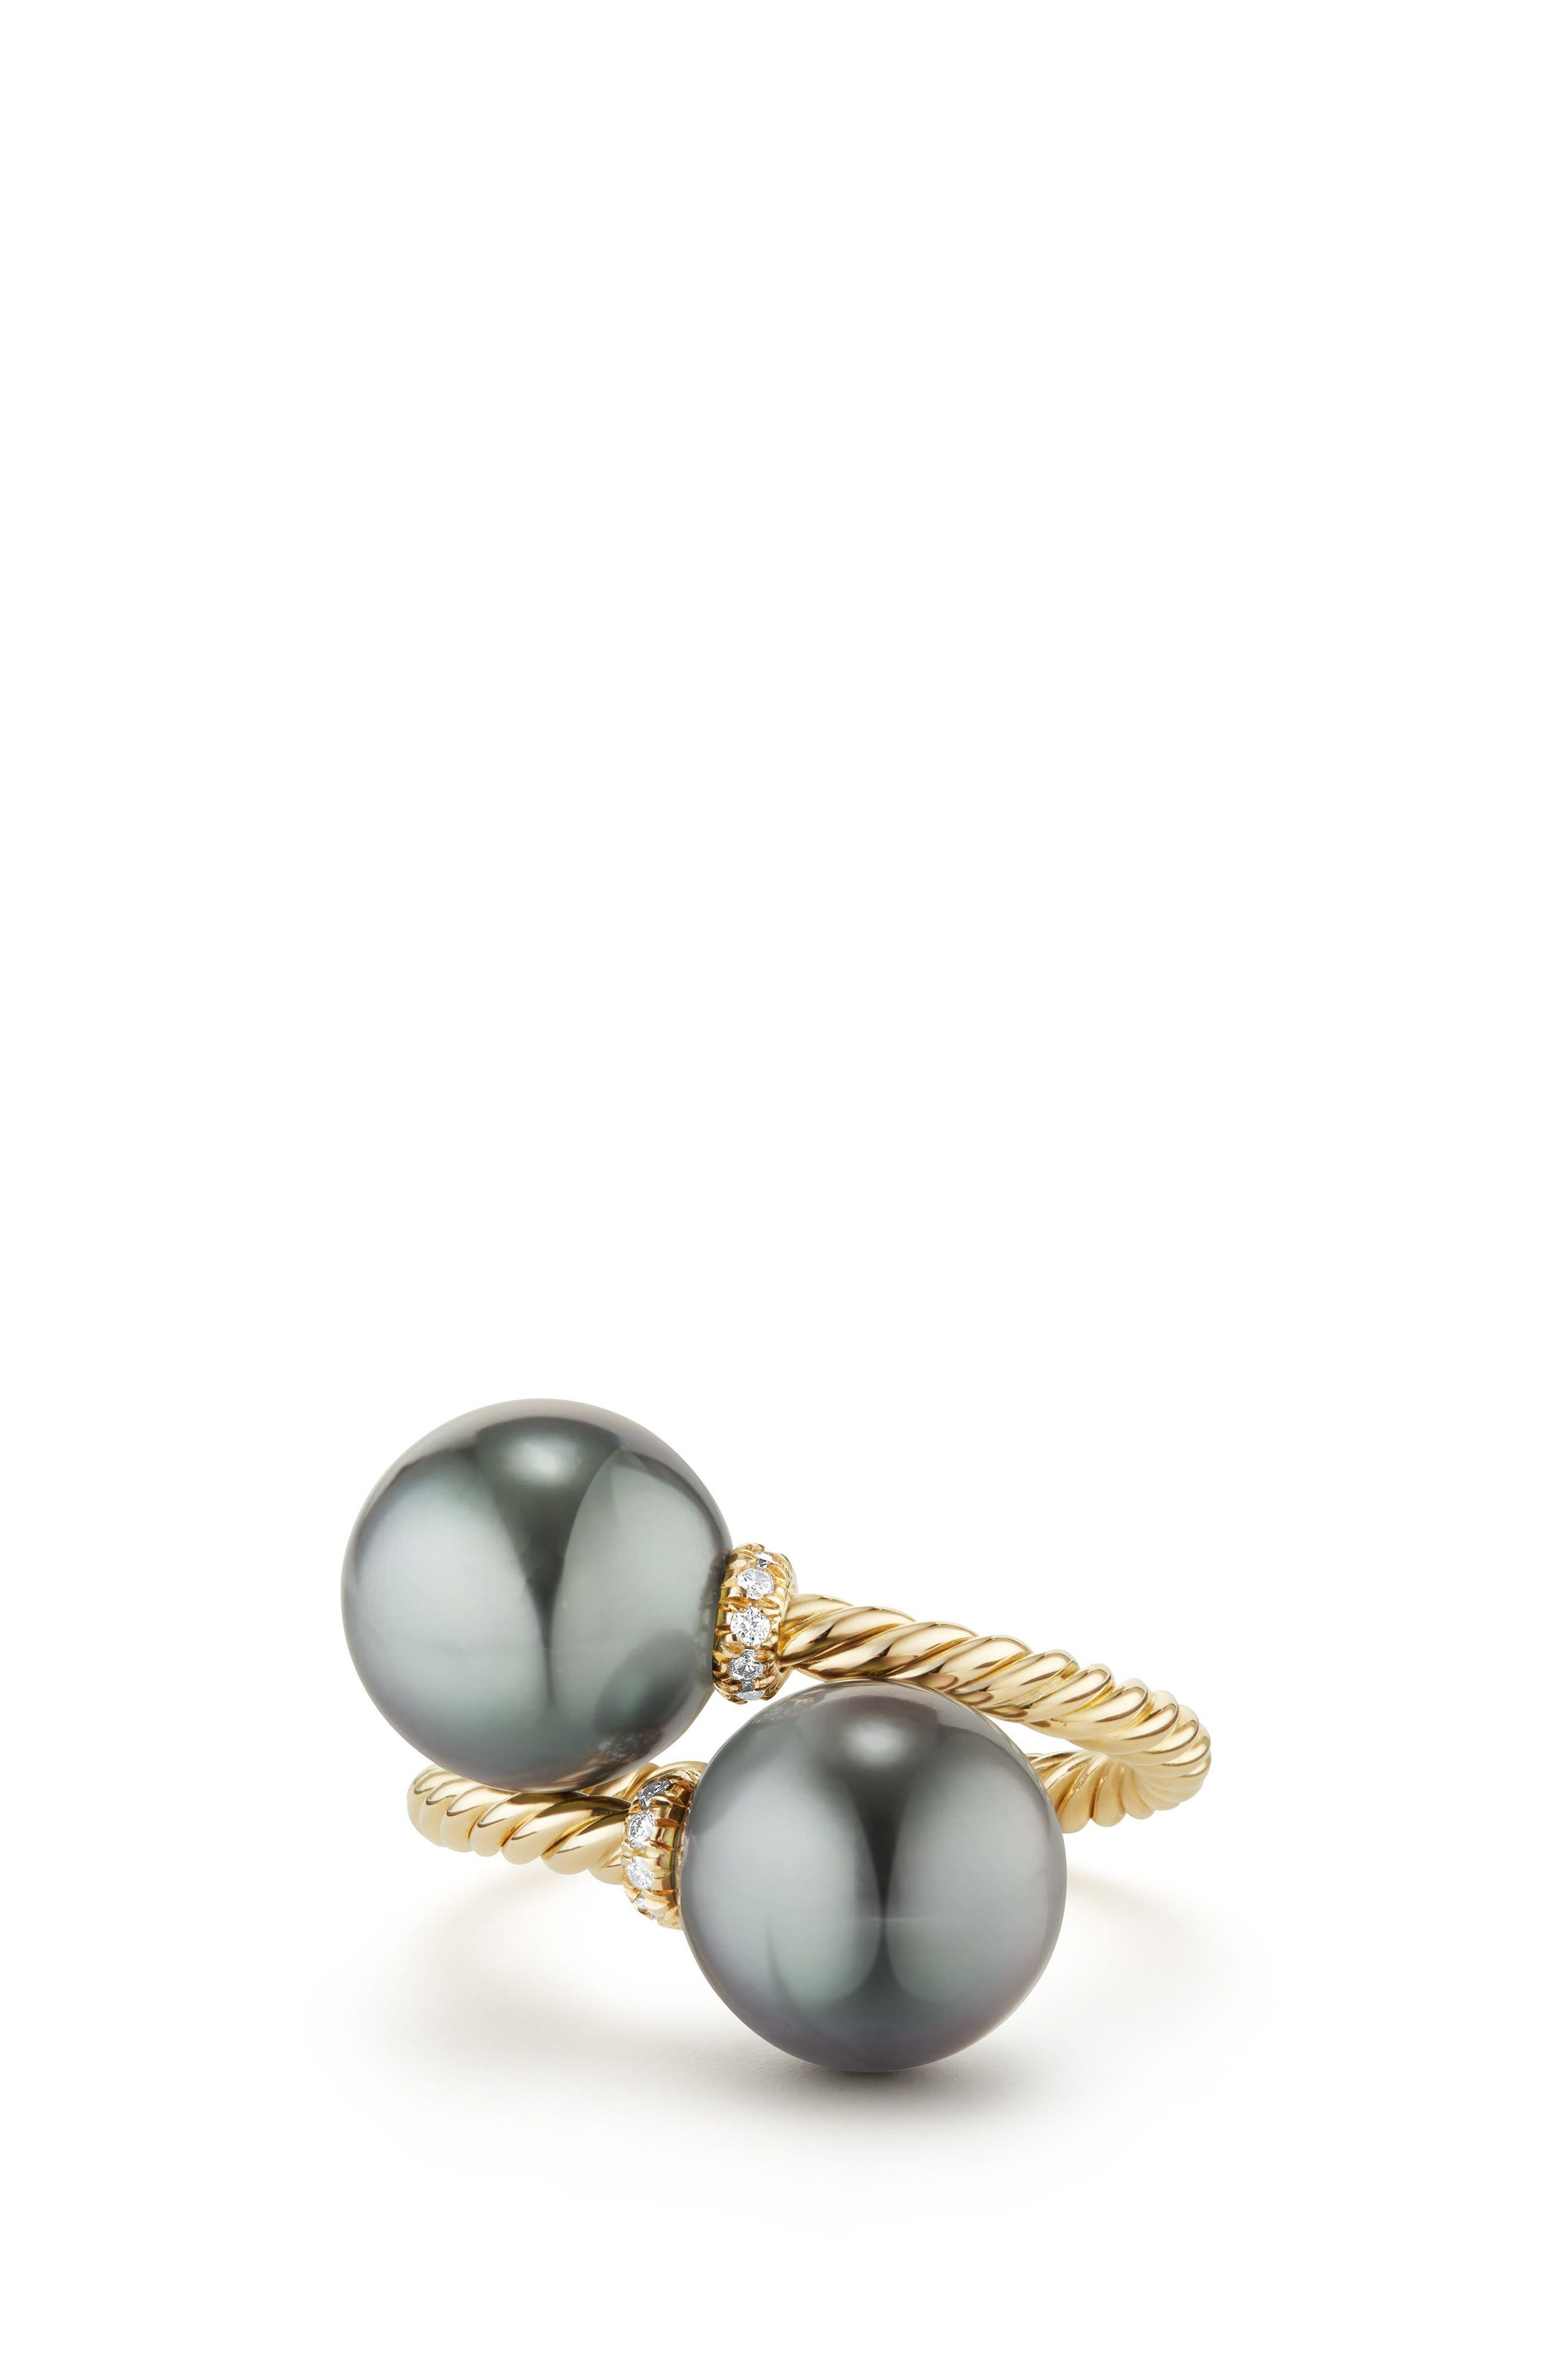 Solari Bypass Ring with Diamond in 18K Gold,                             Main thumbnail 1, color,                             GOLD/ DIAMOND/ GREY PEARL